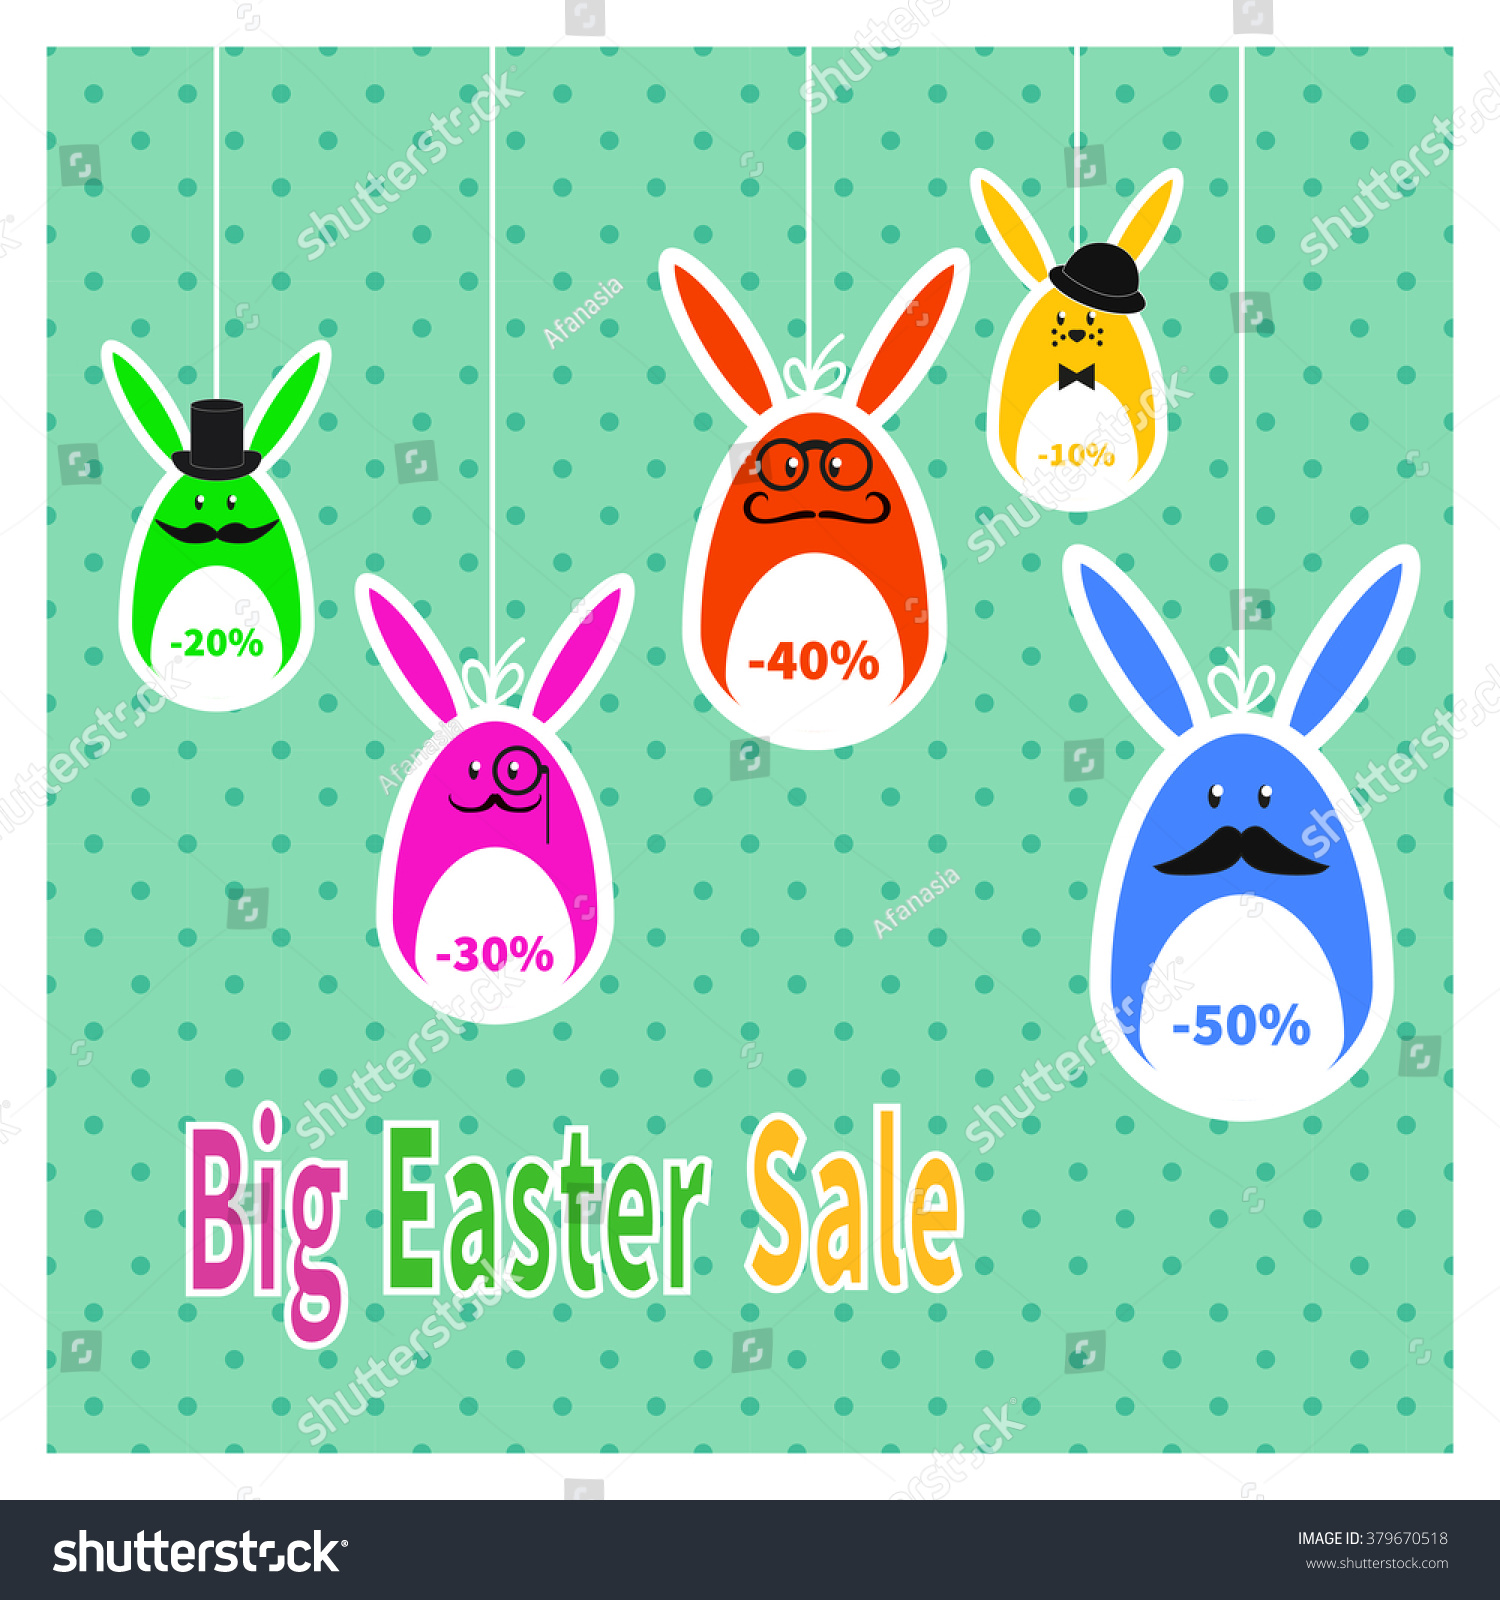 Poster design price - Easter Sale Poster With Hanging Price Rabbits Stickers On A Polka Dot Background Colorful Holiday